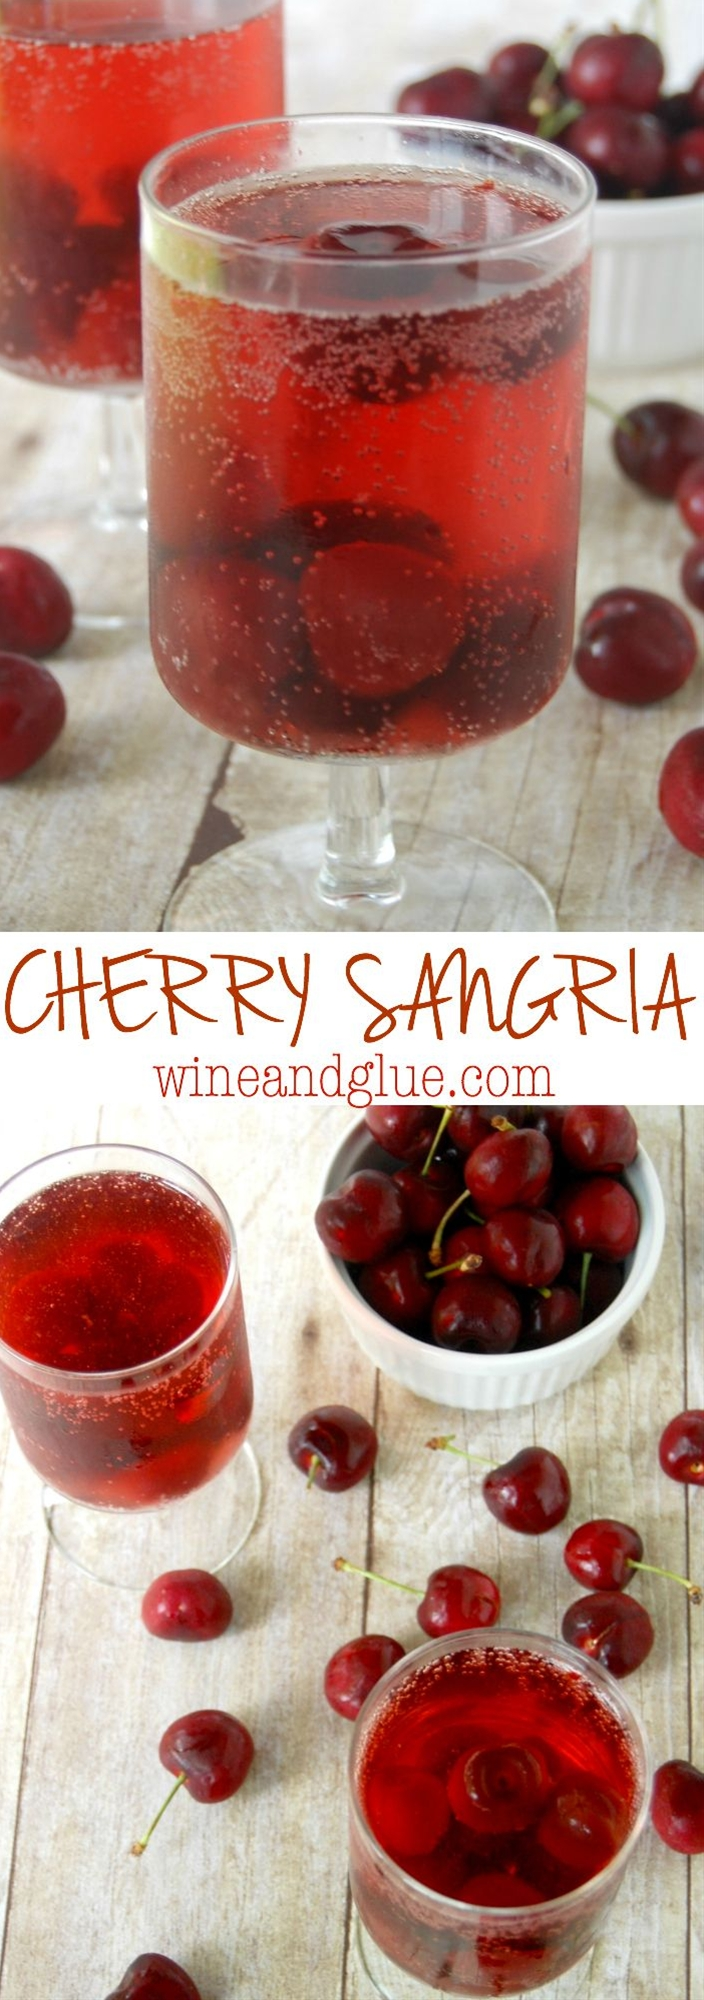 Just FOUR ingredients for this simple but irresistible Cherry Sangria!     Mix together the wine, the amaretto, and the cherries and let sit overnight. Note that this recipe actually tastes best two days past making it, though it is delicious after one night in the fridge.     Serve the sangria topped with the white soda (or club soda for a less sweet drink). I did about two parts sangria to every one part soda.